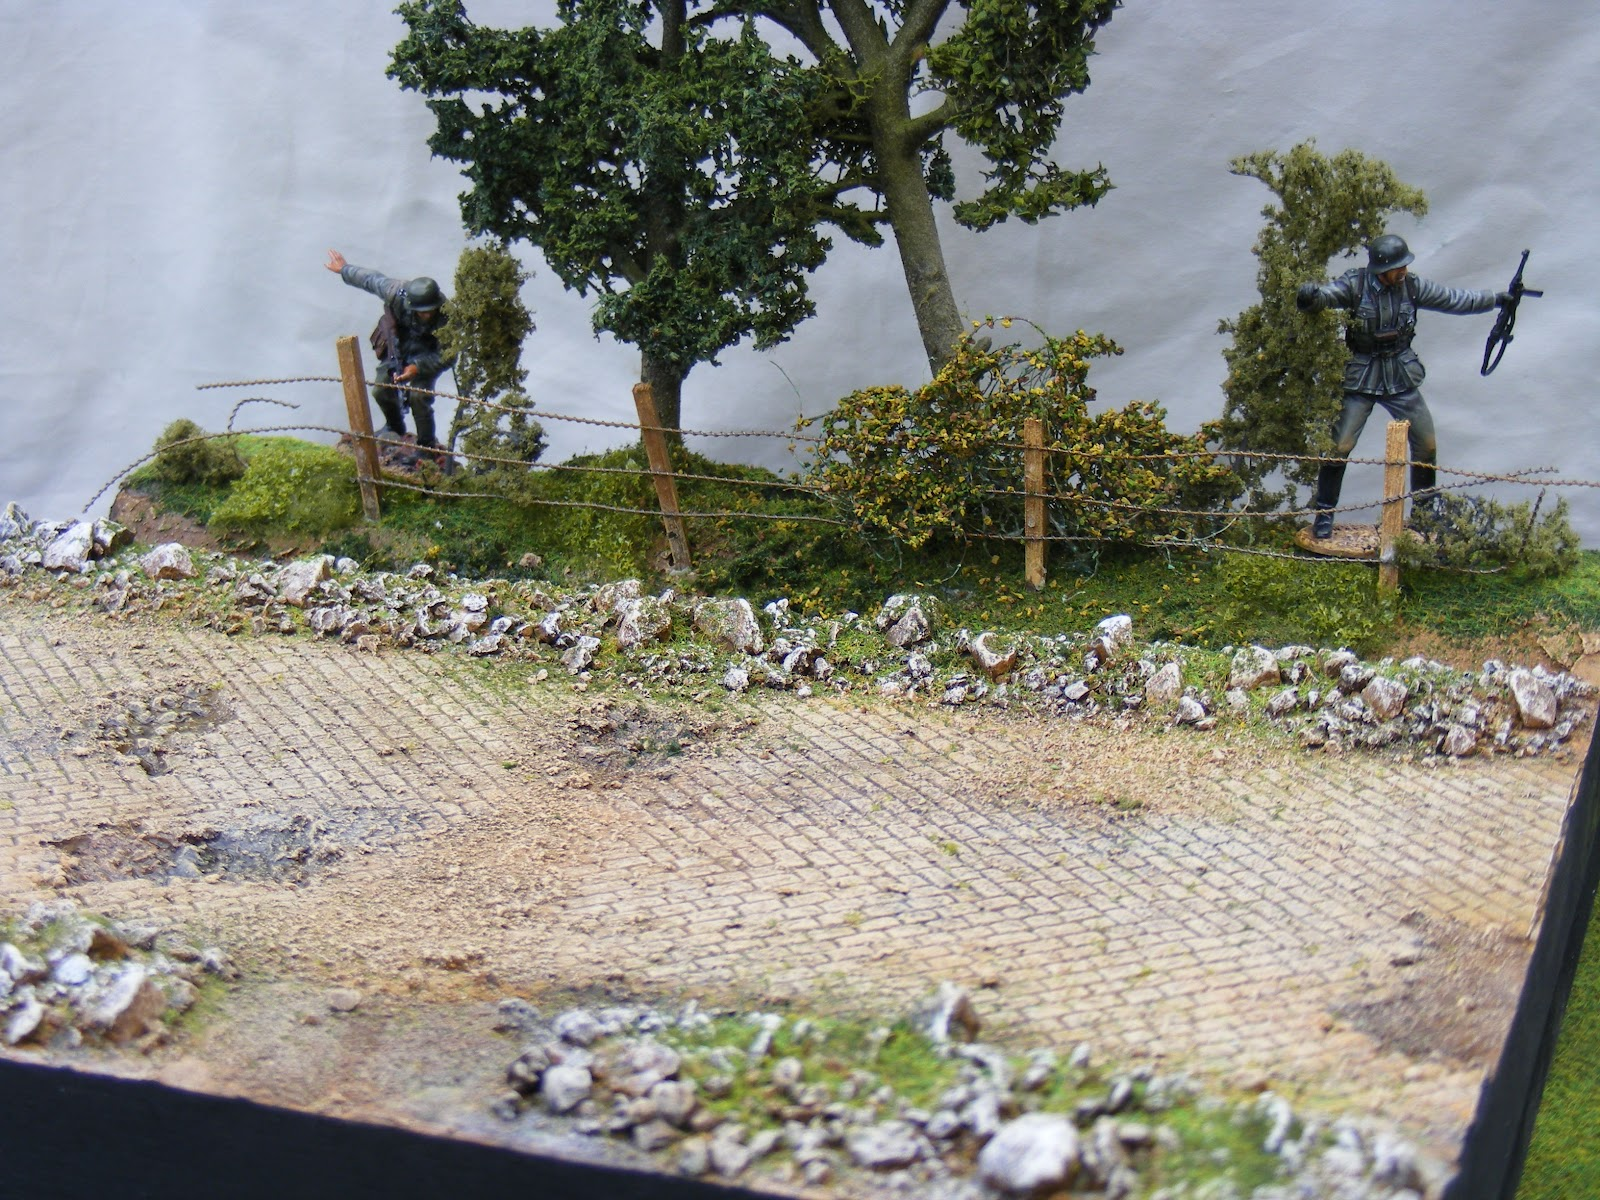 Terrain And Toy Soldiers March 2012